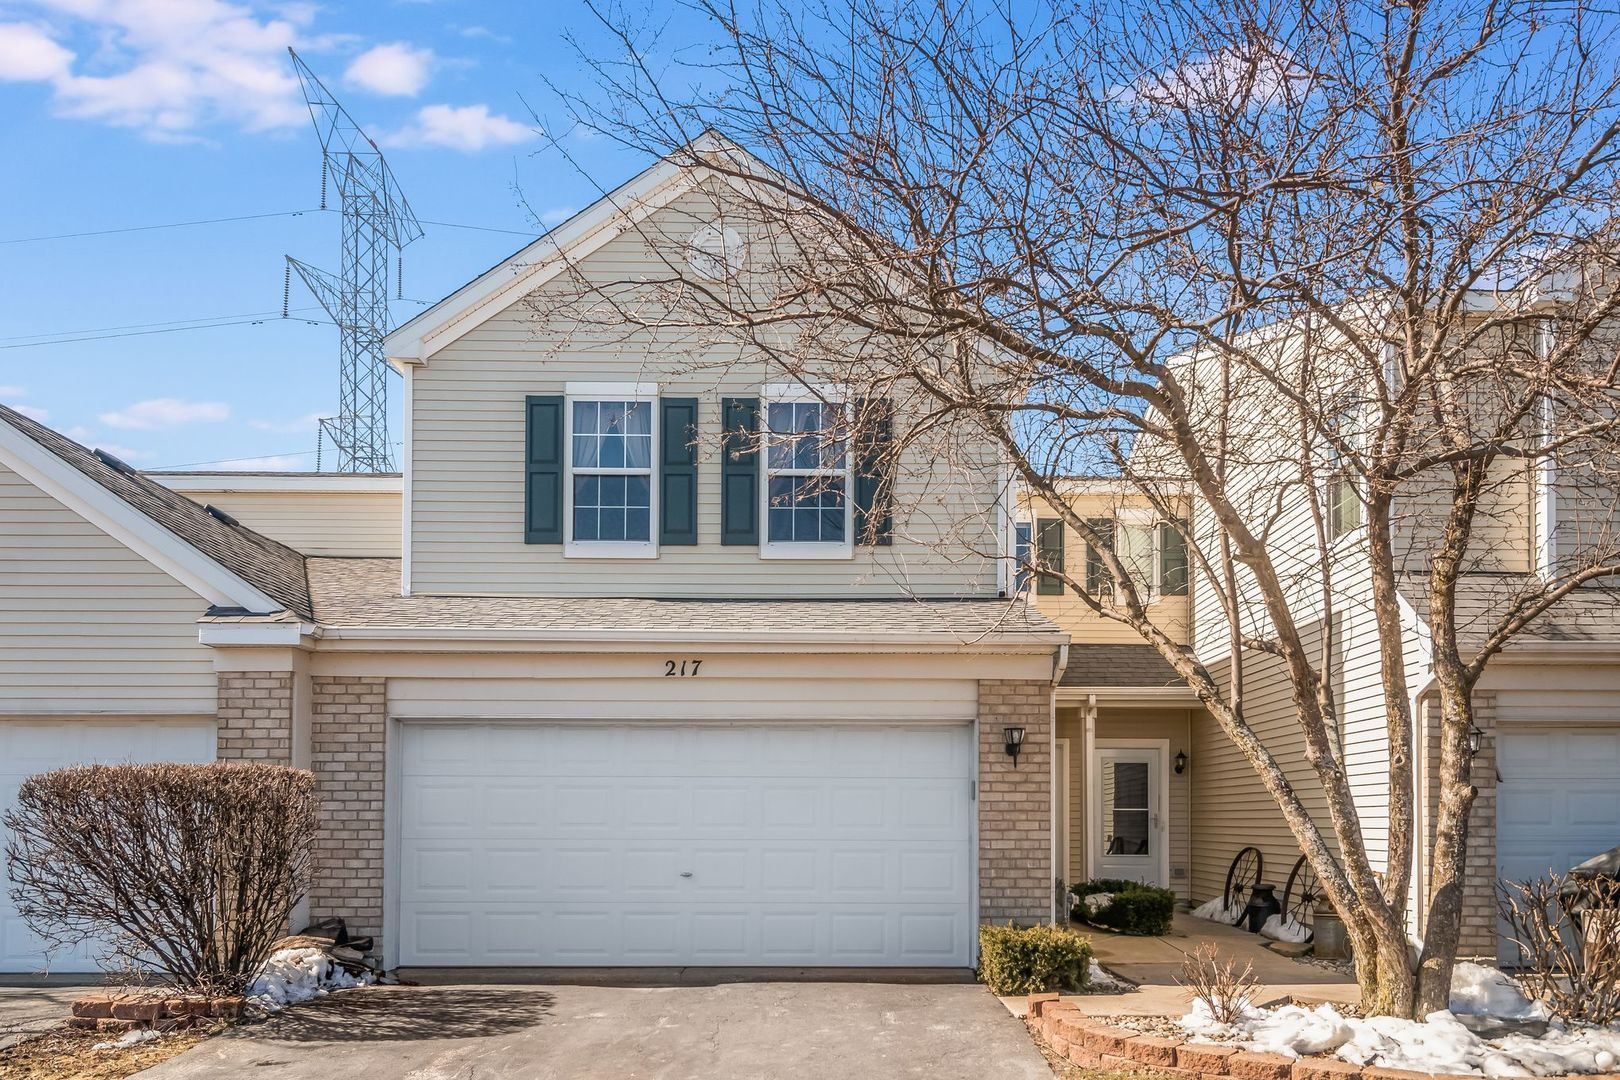 Photo of 217 Parkside Drive #217, Shorewood, IL 60404 (MLS # 11011014)